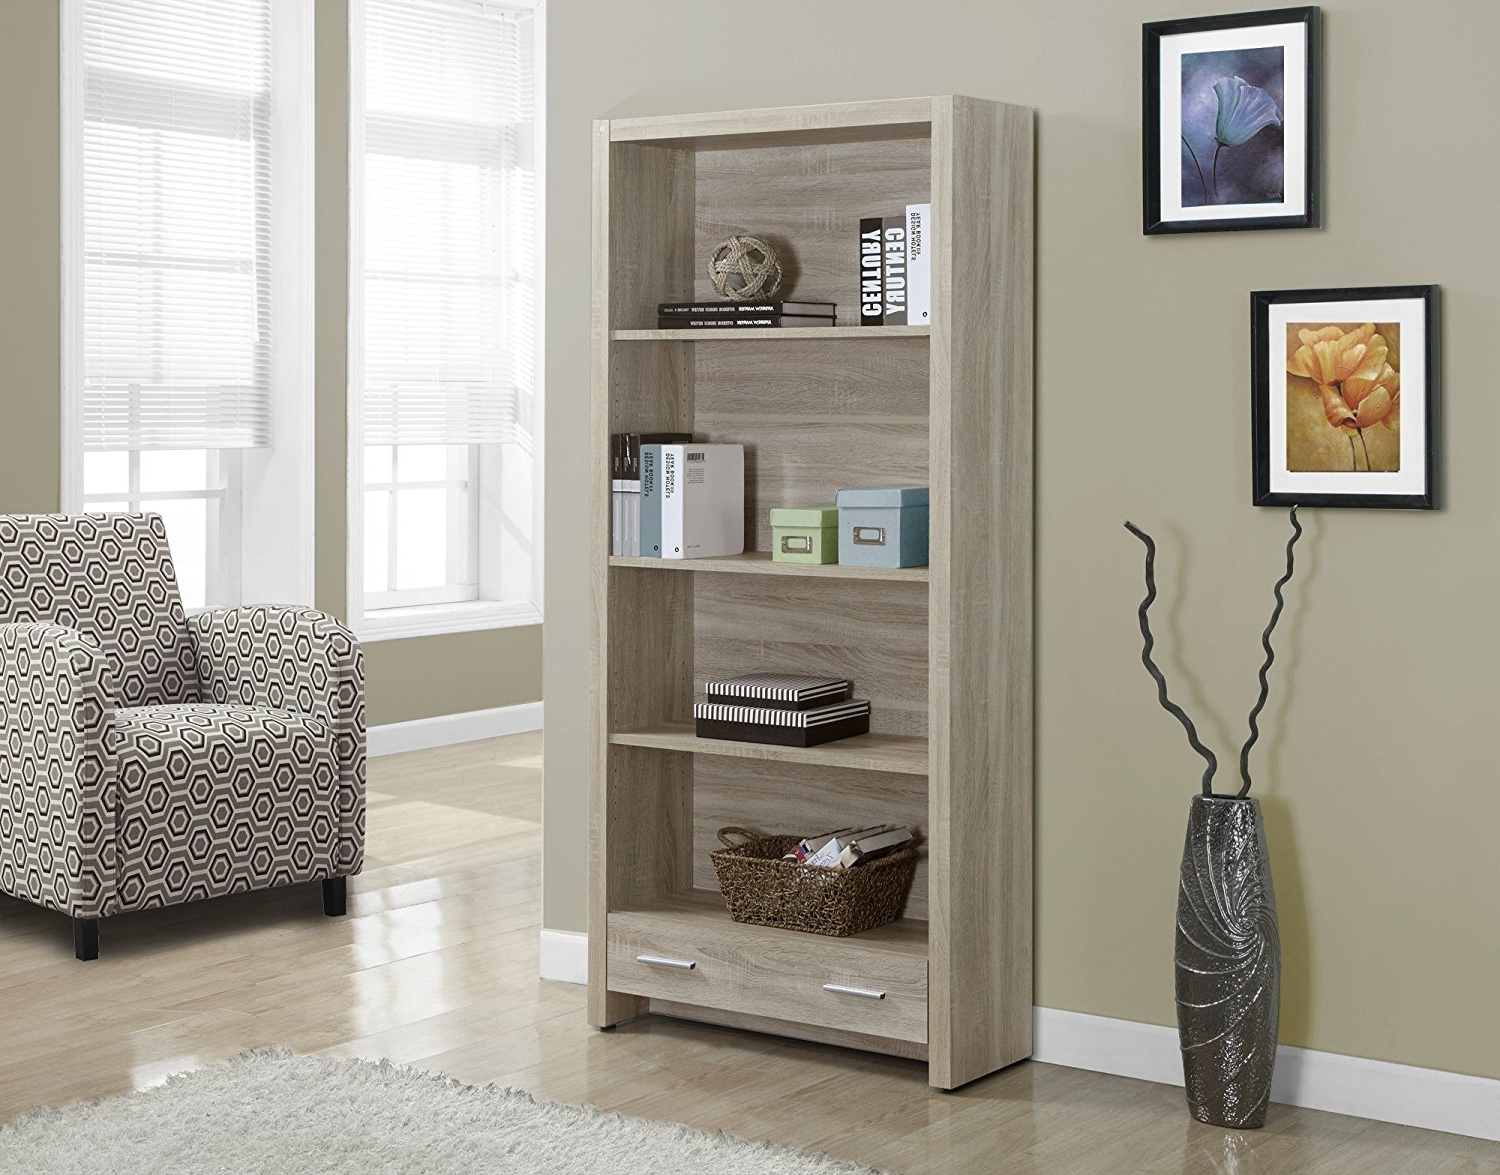 Current Furniture Home: Carson Threshold Bookcase Sensational Picture With Regard To Threshold Bookcases (View 8 of 15)